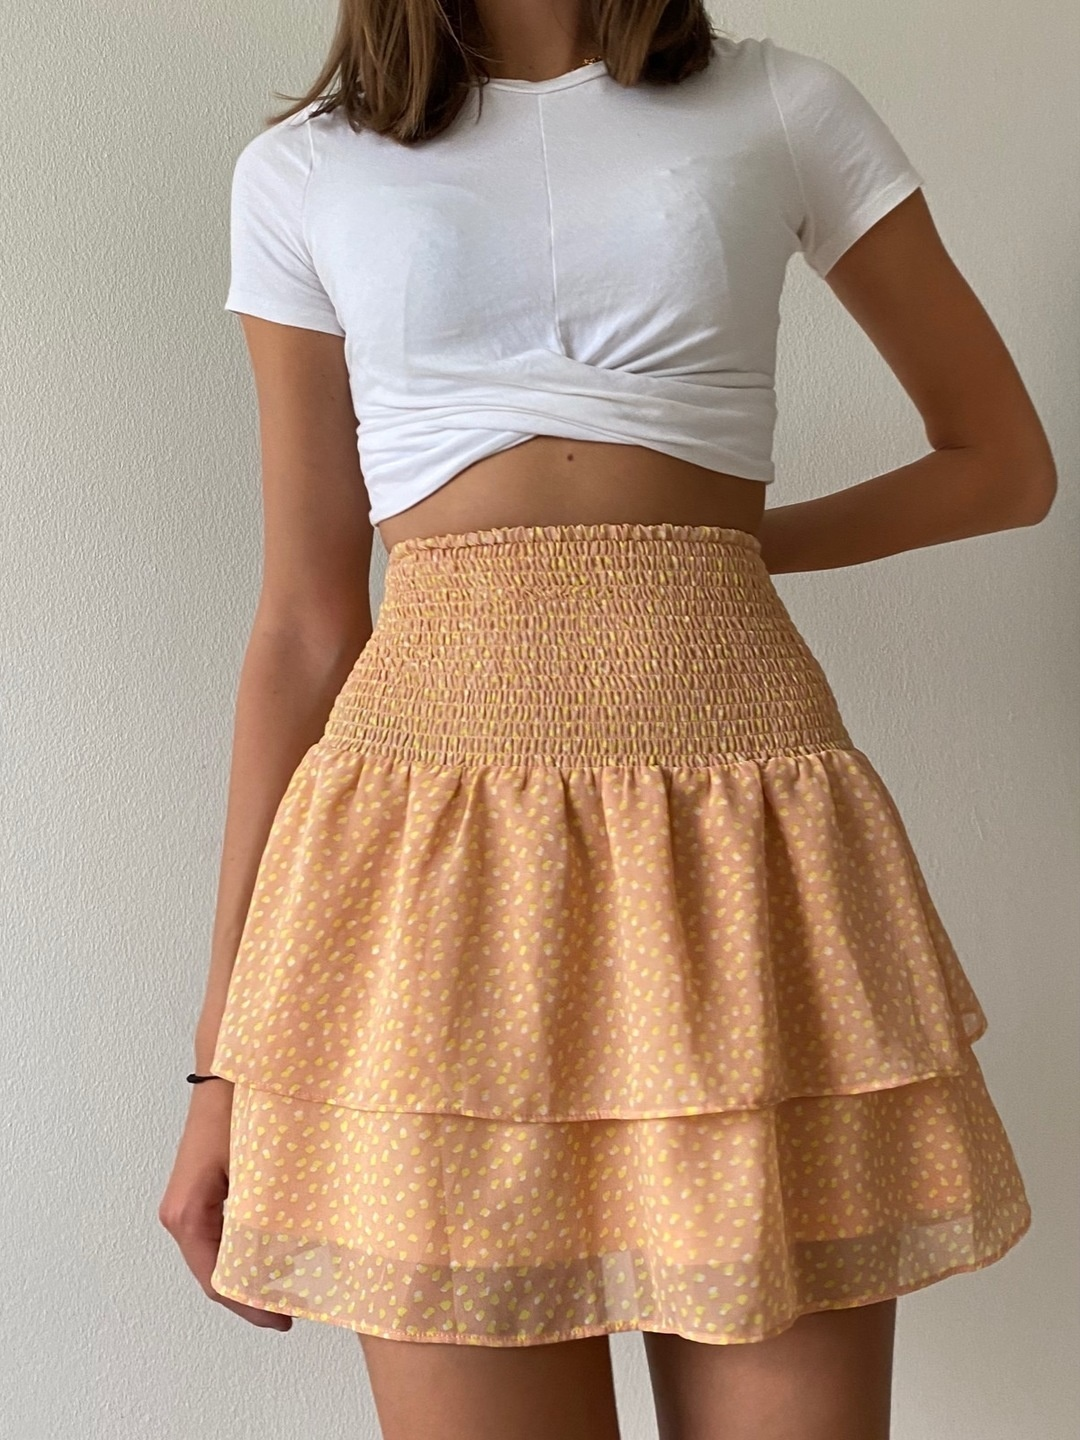 Women's skirts - SISTERS' POINT photo 2